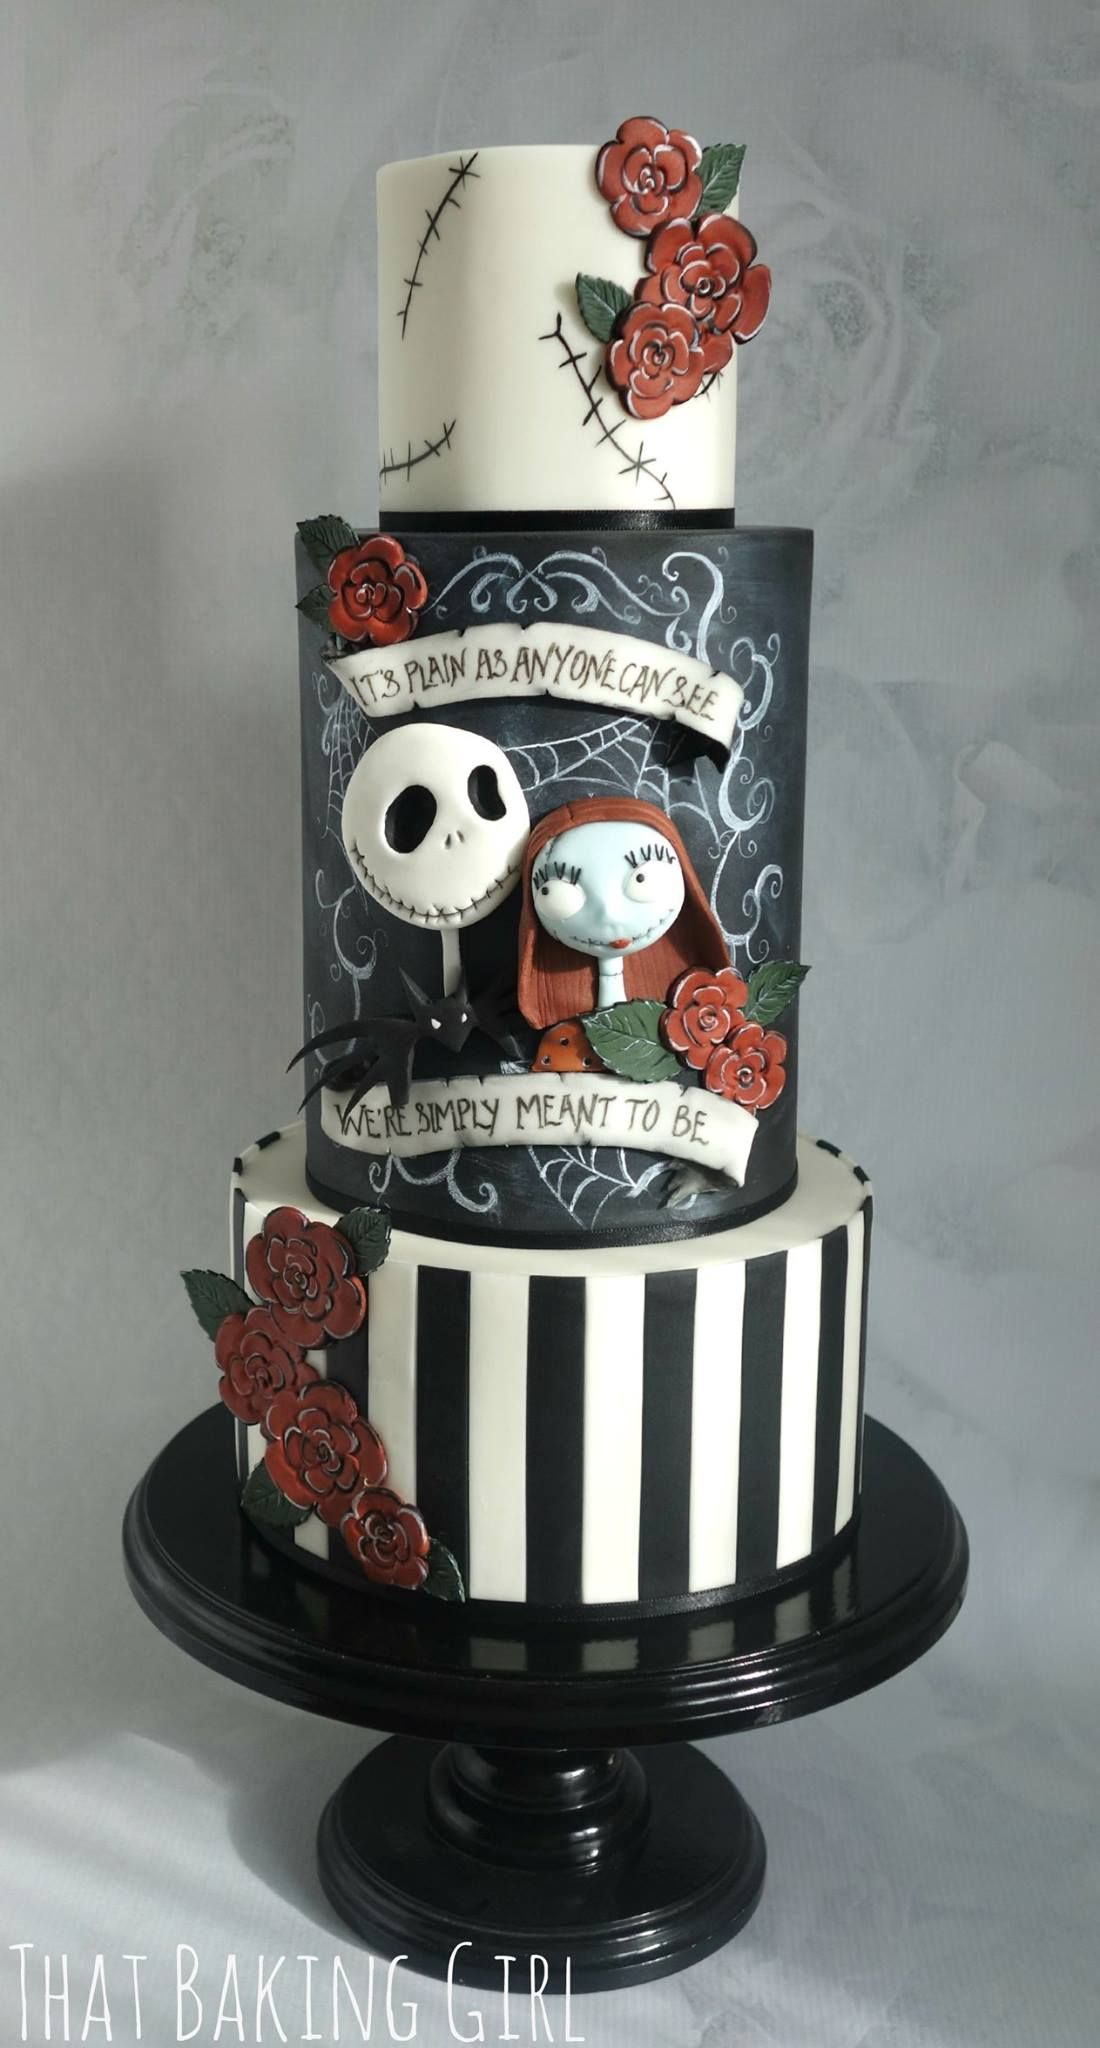 we\'re simply meant to be: nightmare before christmas wedding cake ...